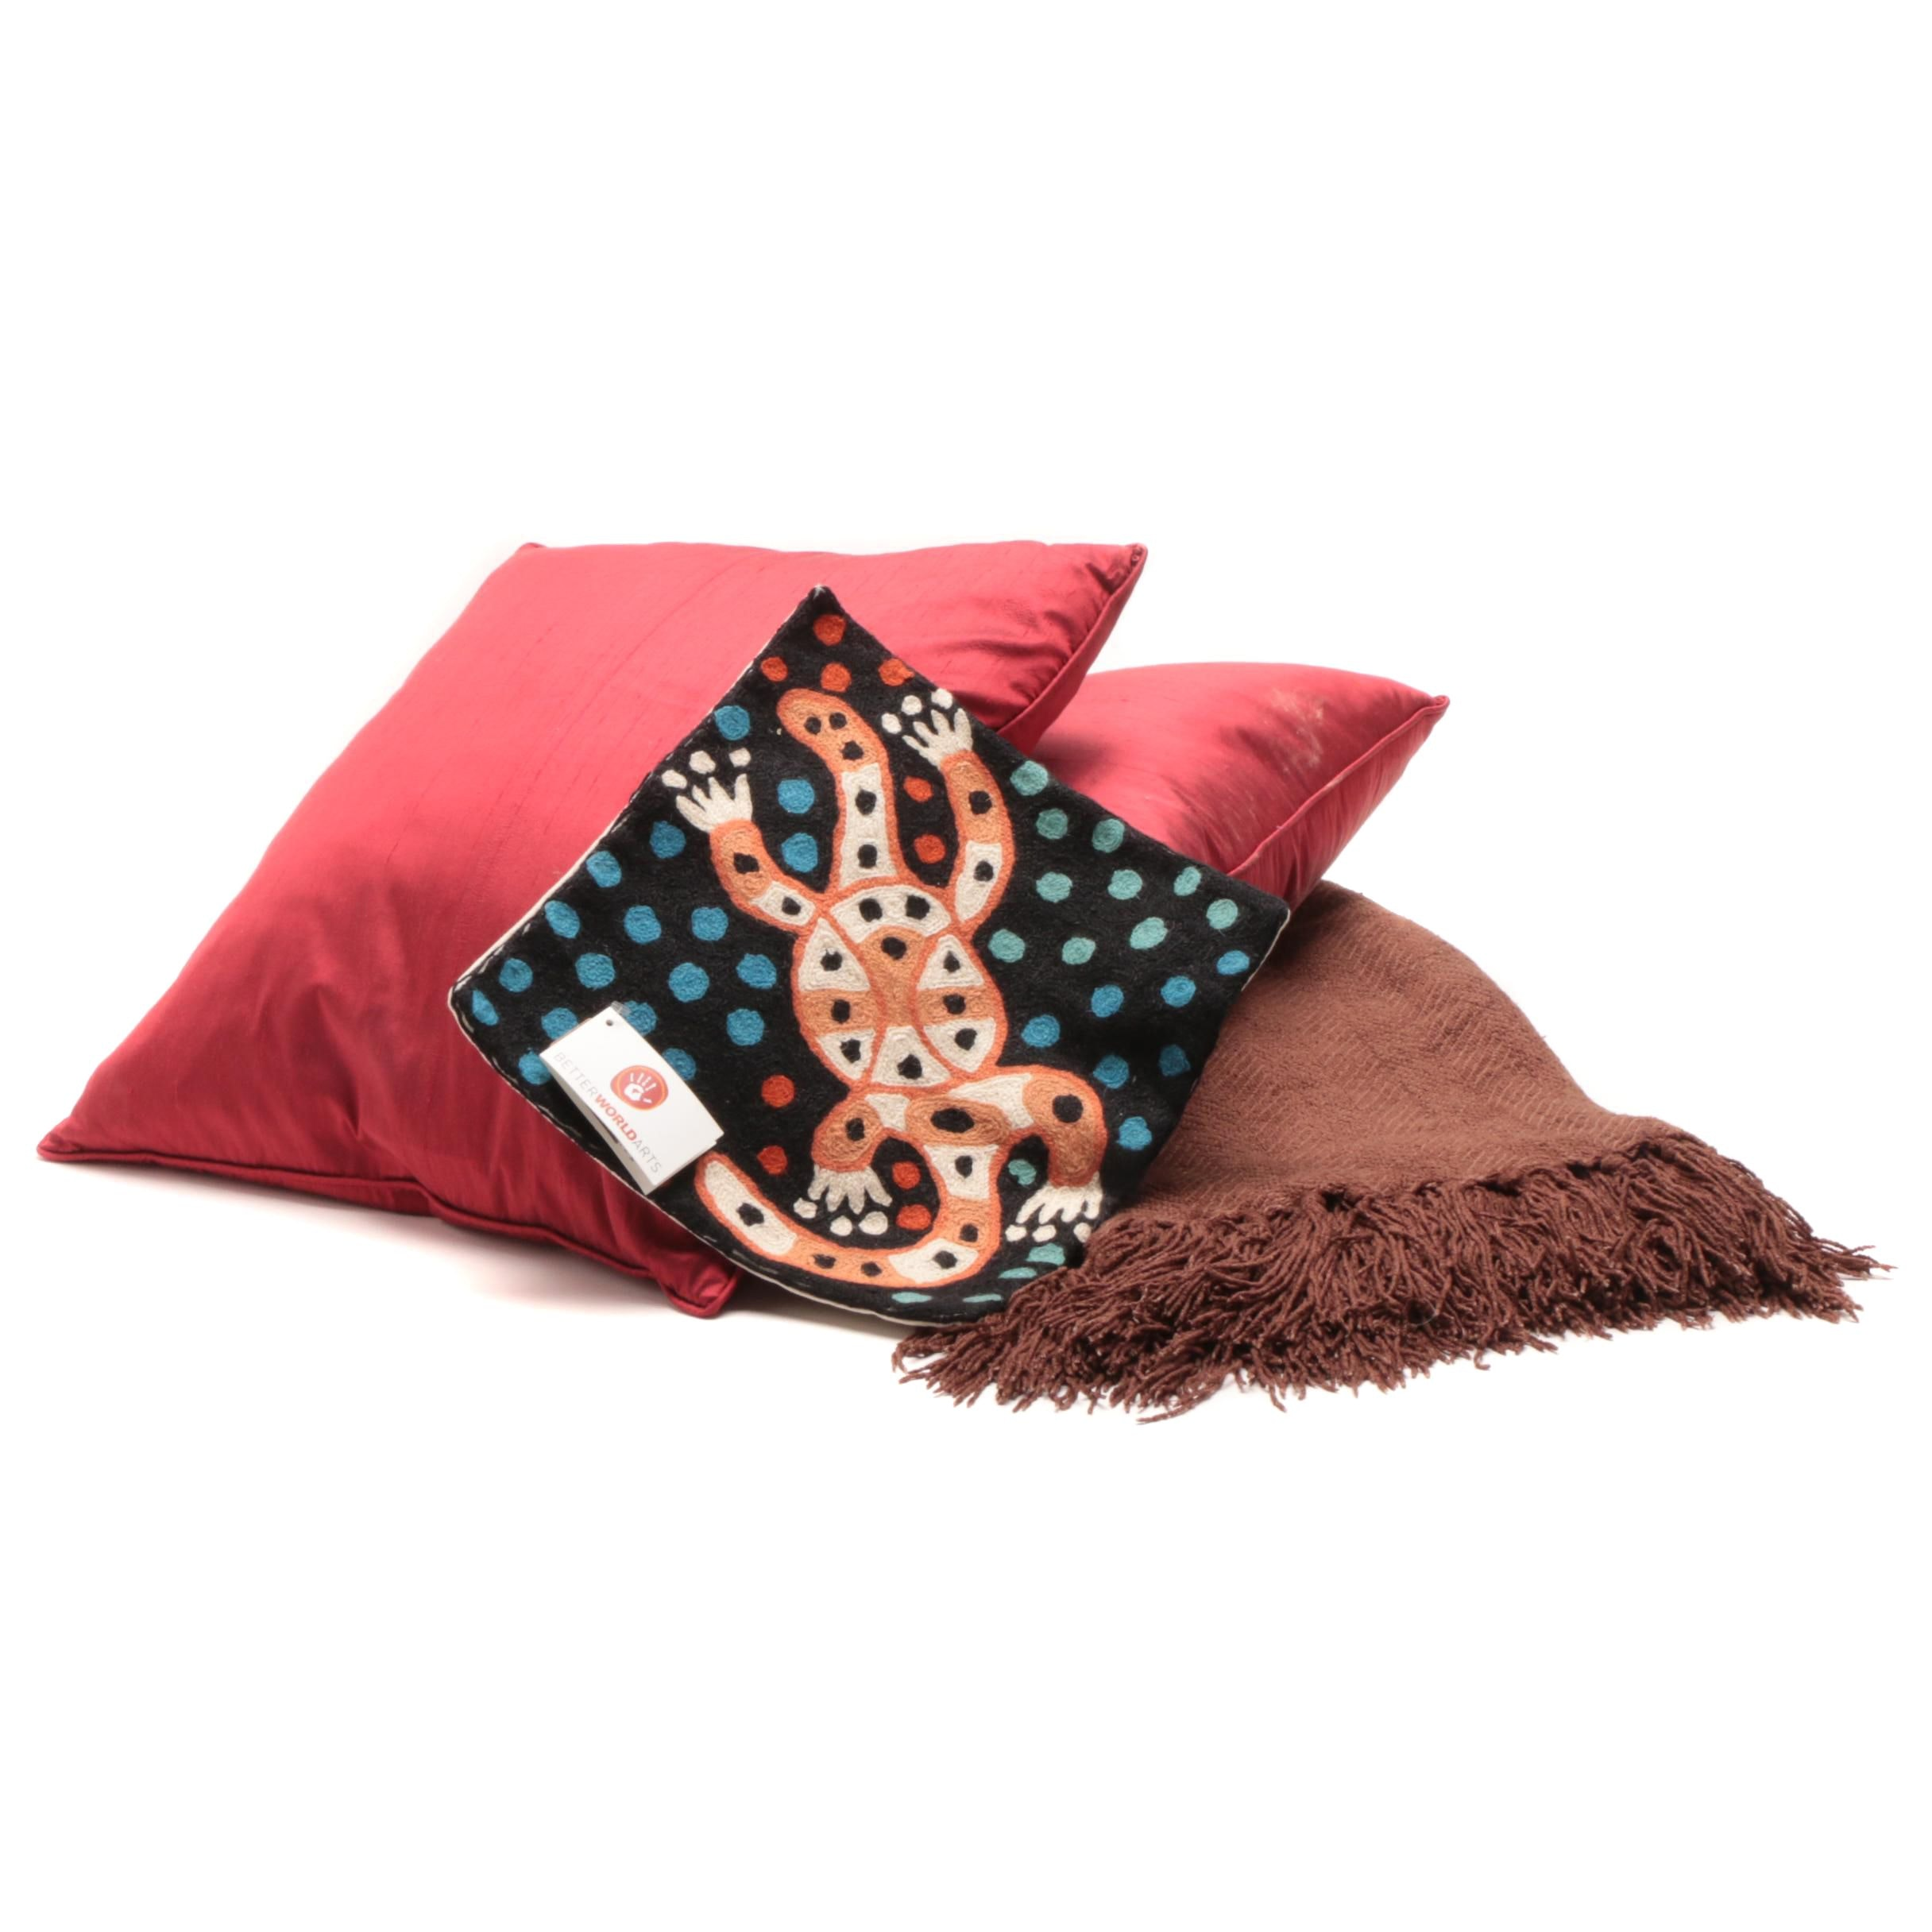 Decorative Pillows and Bamboo Blend Blanket